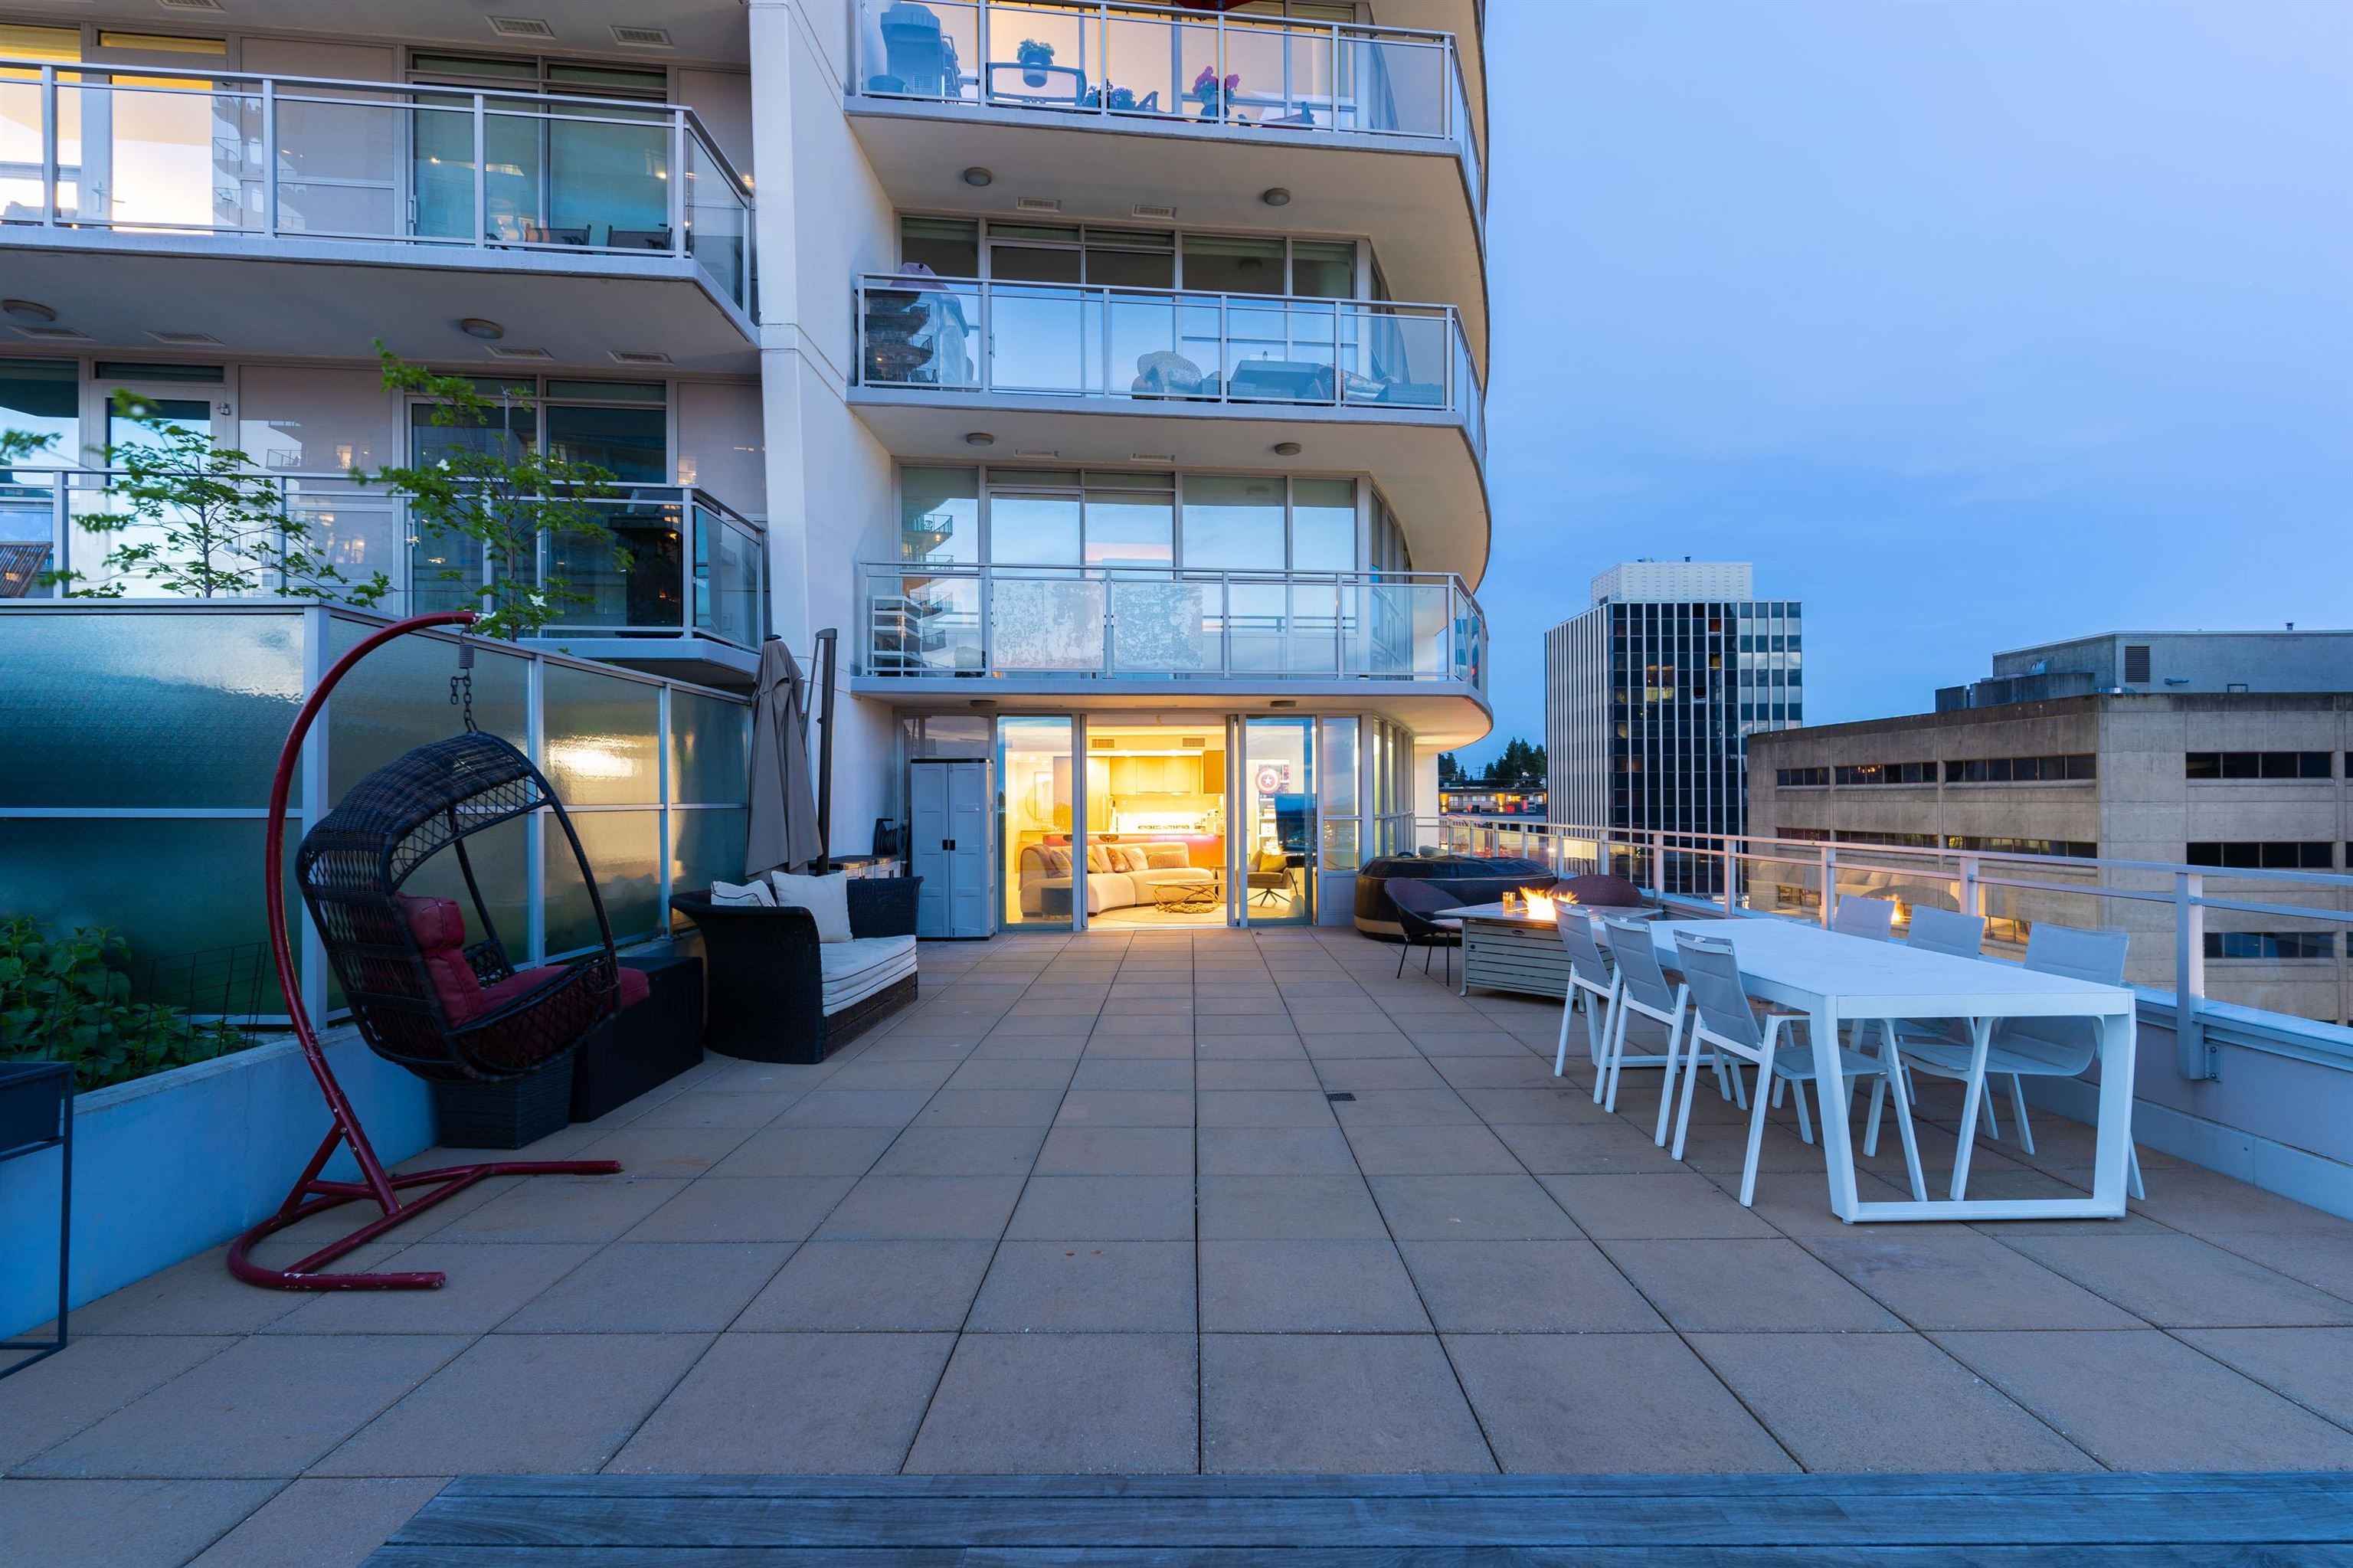 306 112 E 13TH STREET - Central Lonsdale Apartment/Condo for sale, 2 Bedrooms (R2619655) - #25